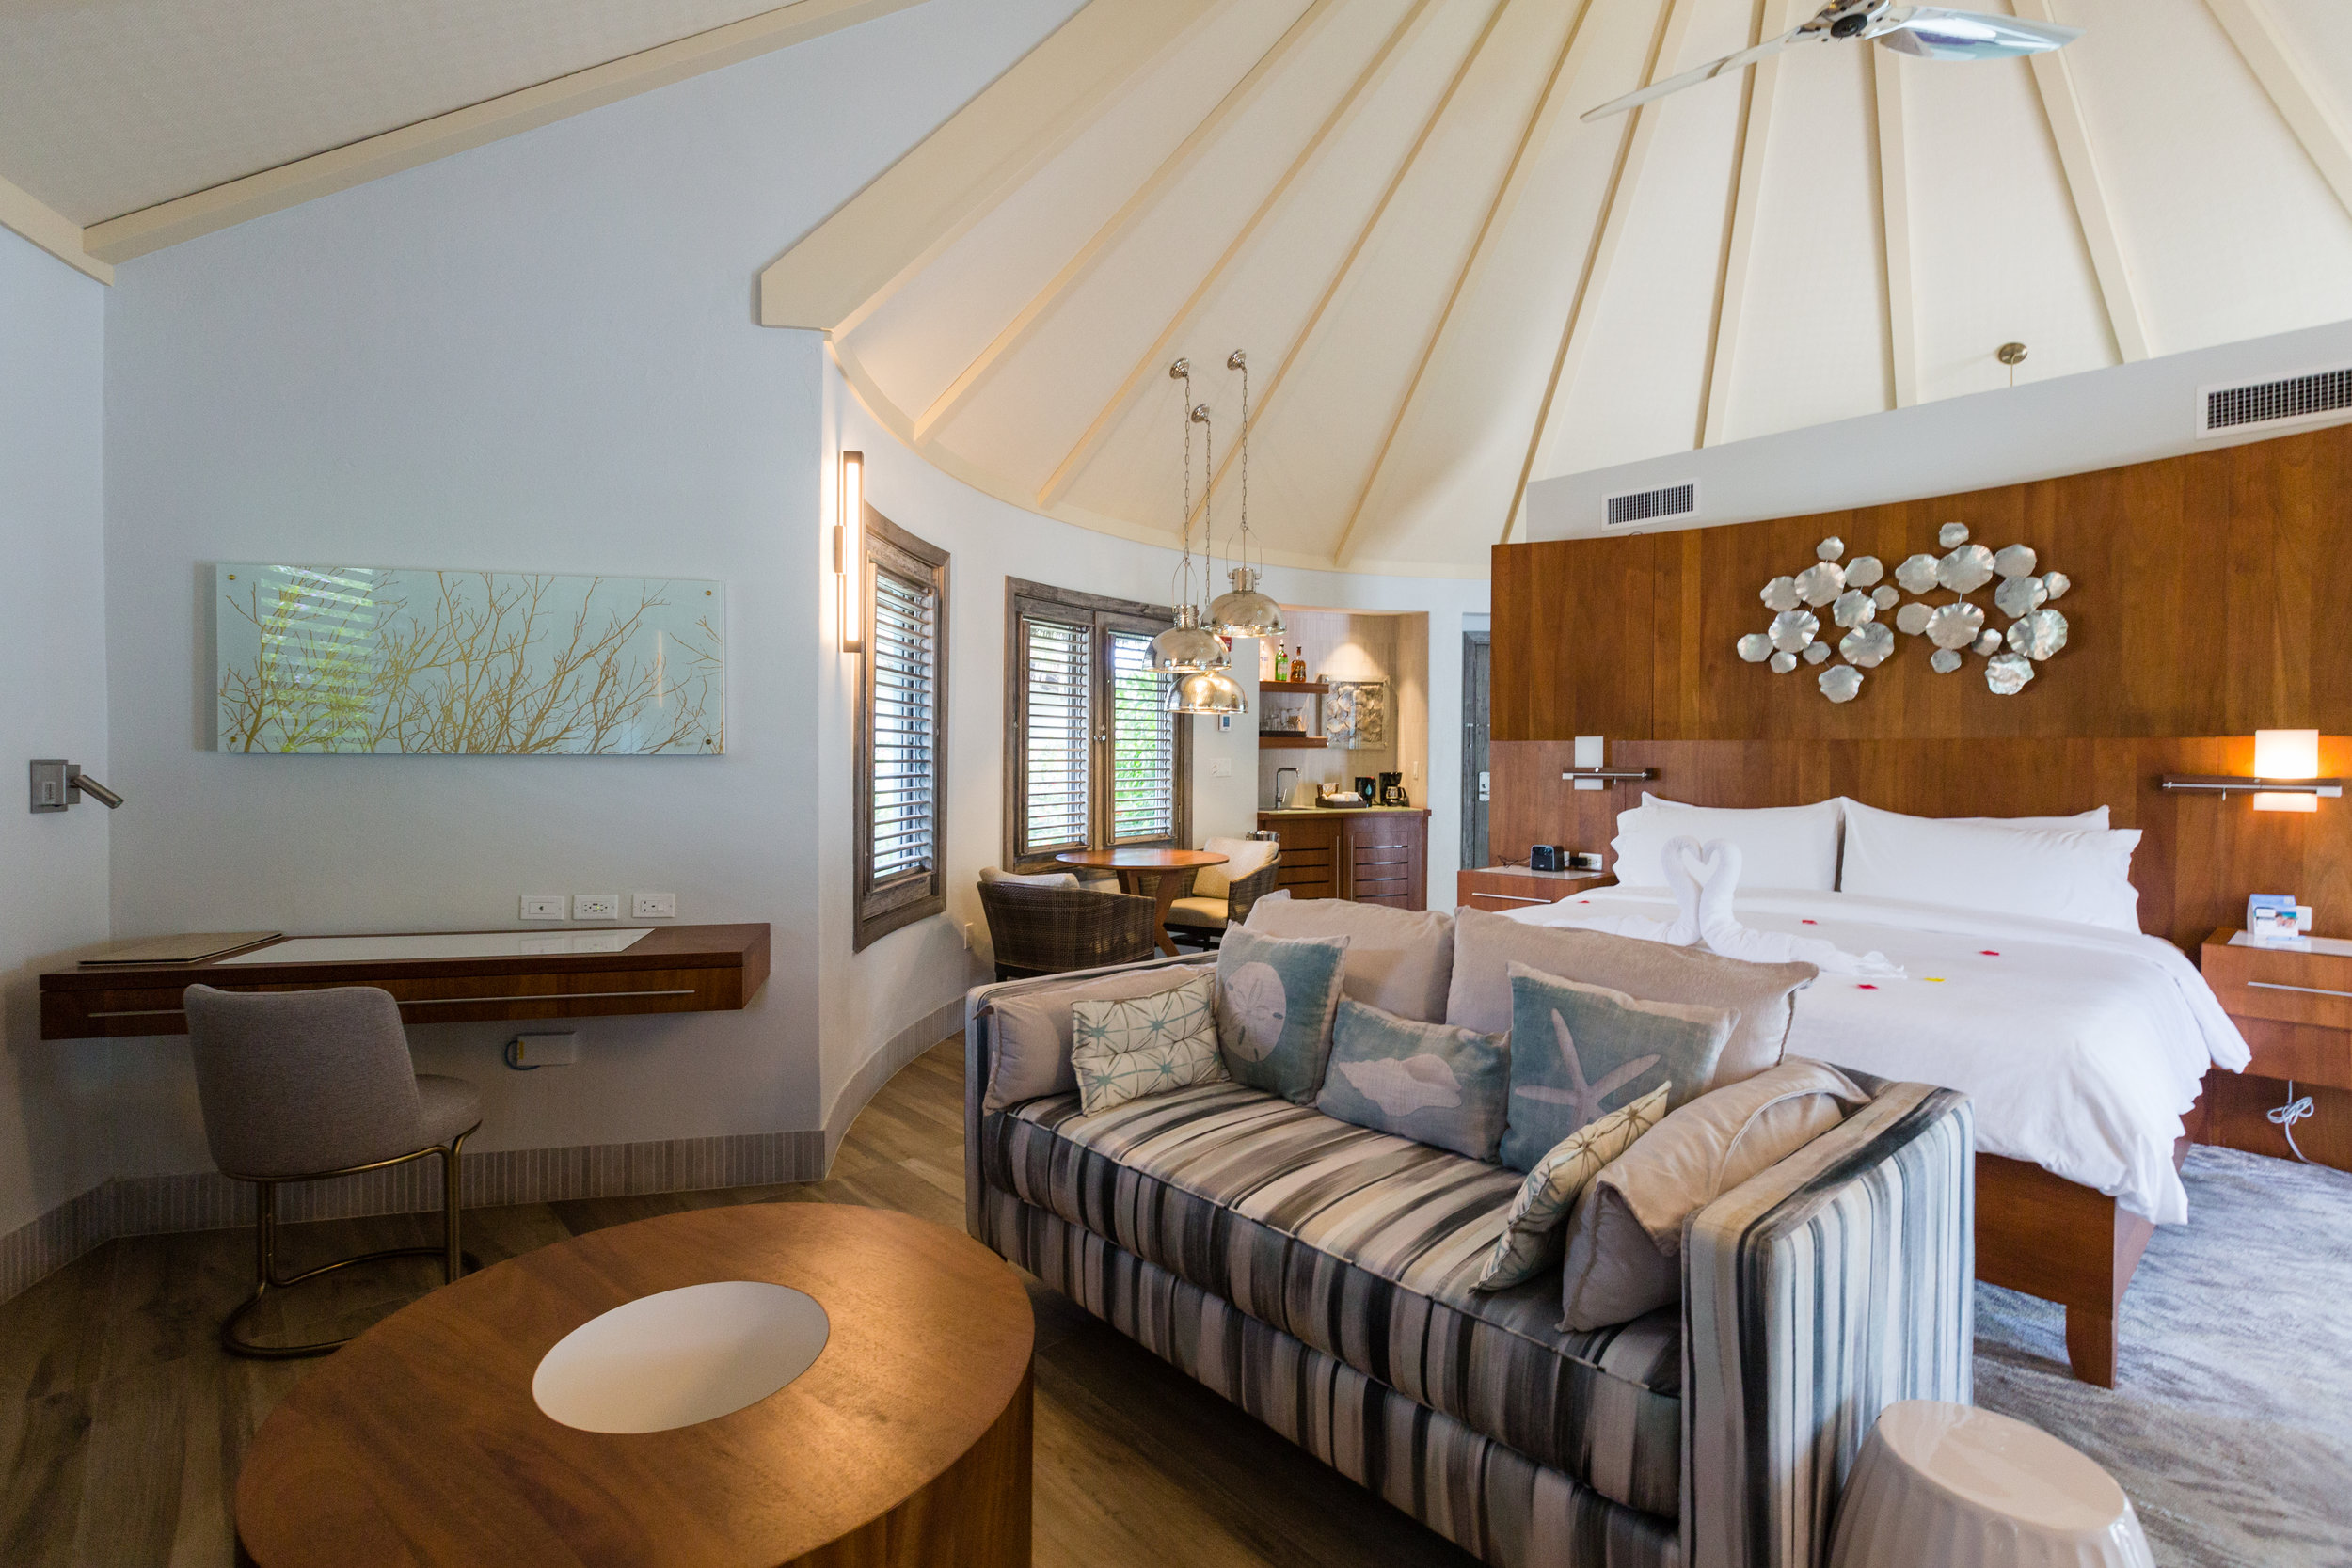 South Seas Royal Ronodoval Butler Suite with Private Pool Sanctuary-0021.jpg